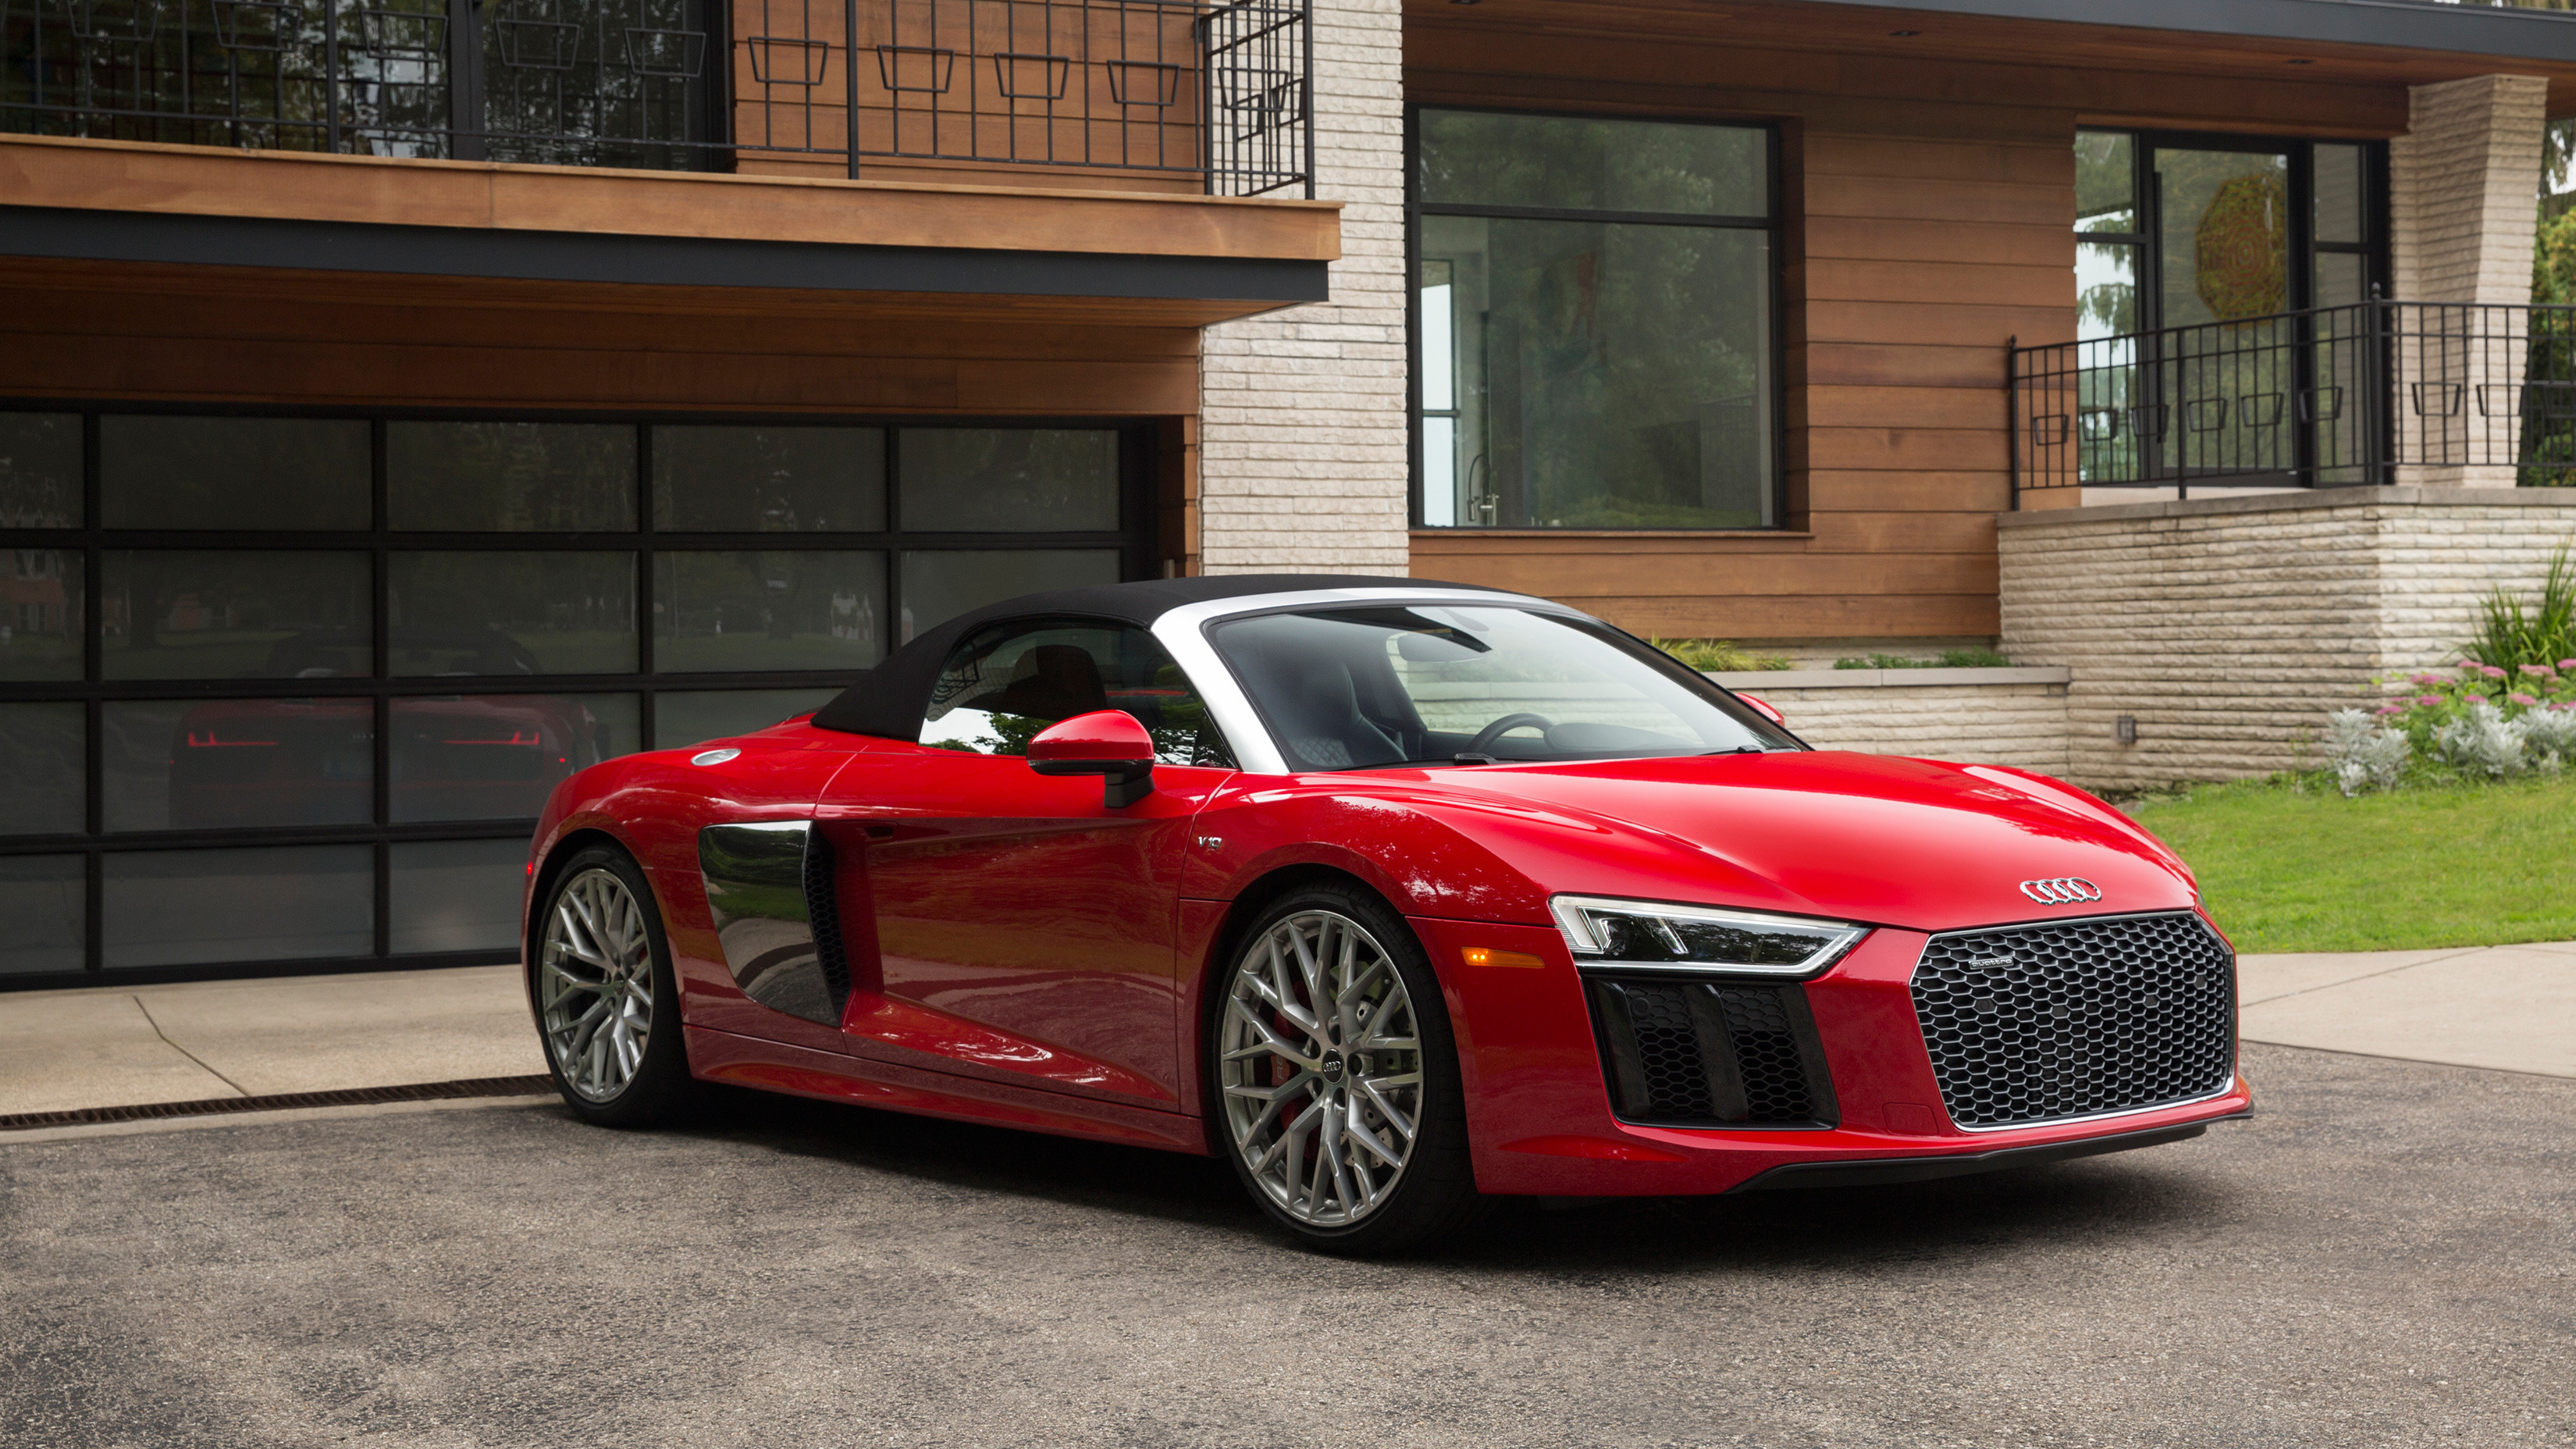 Audi R8 Spyder 2018 Wallpaper